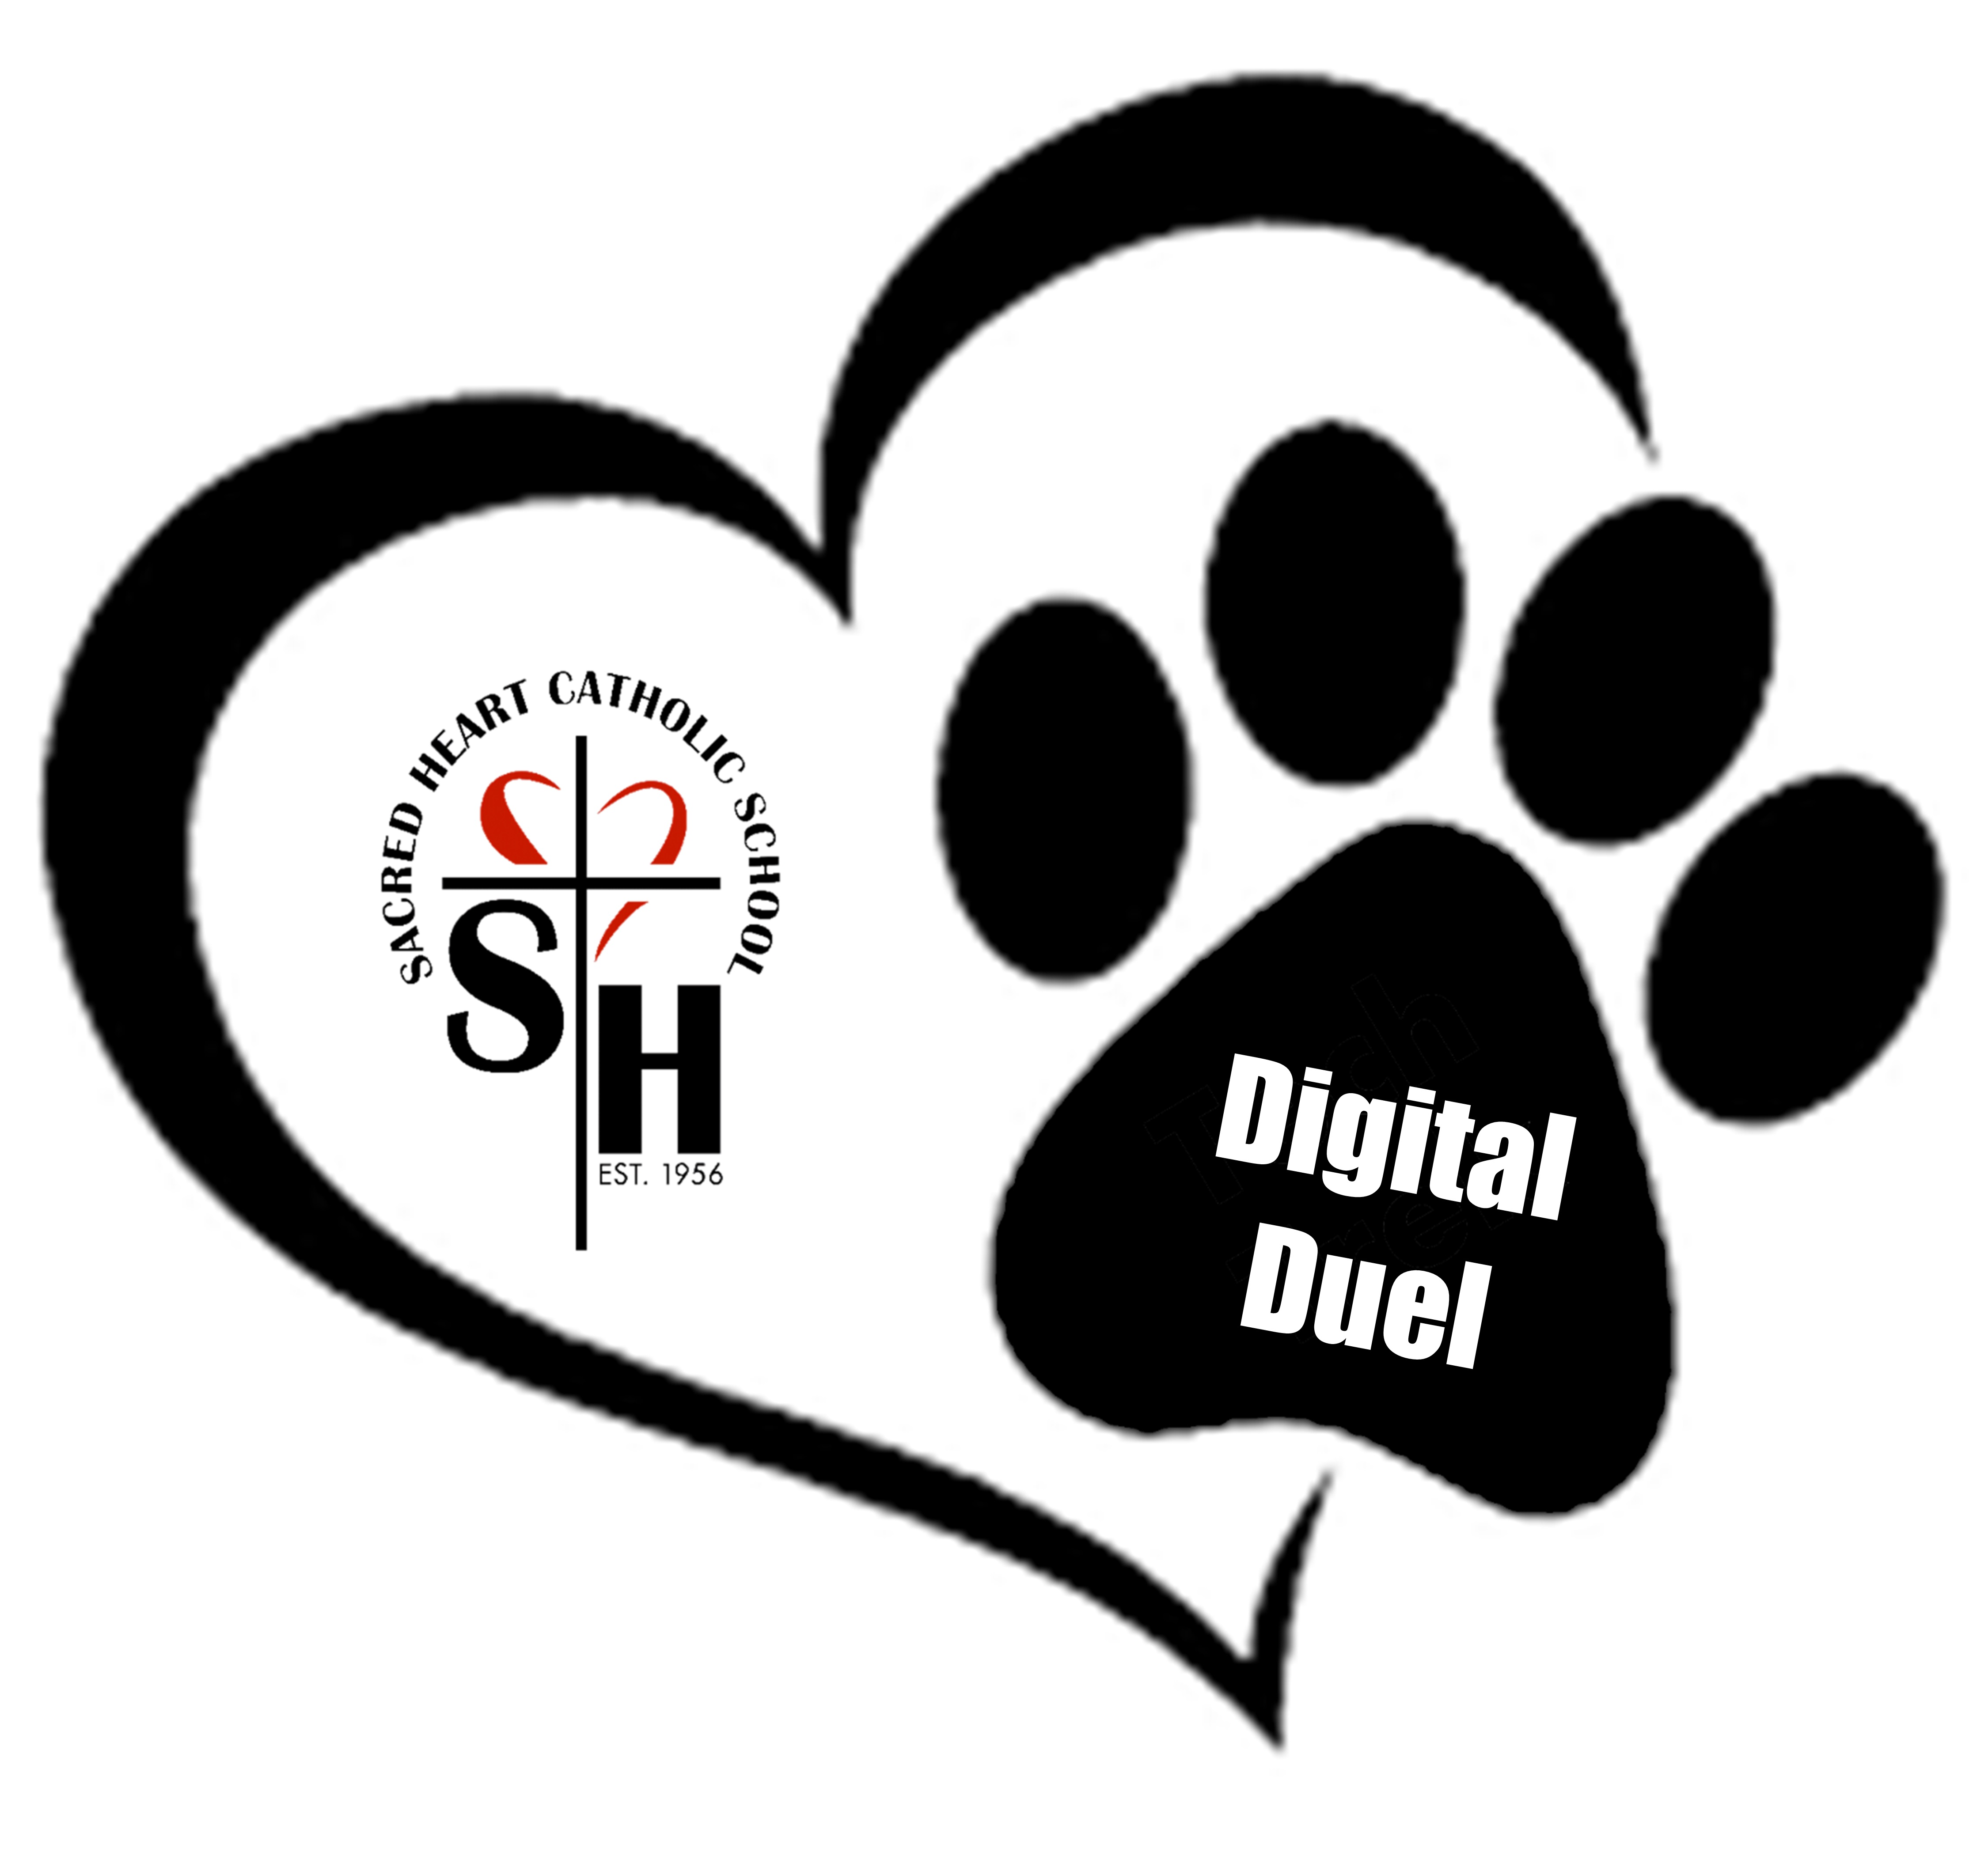 Sacred Heart Catholic School invites you to join in our Digital Duel